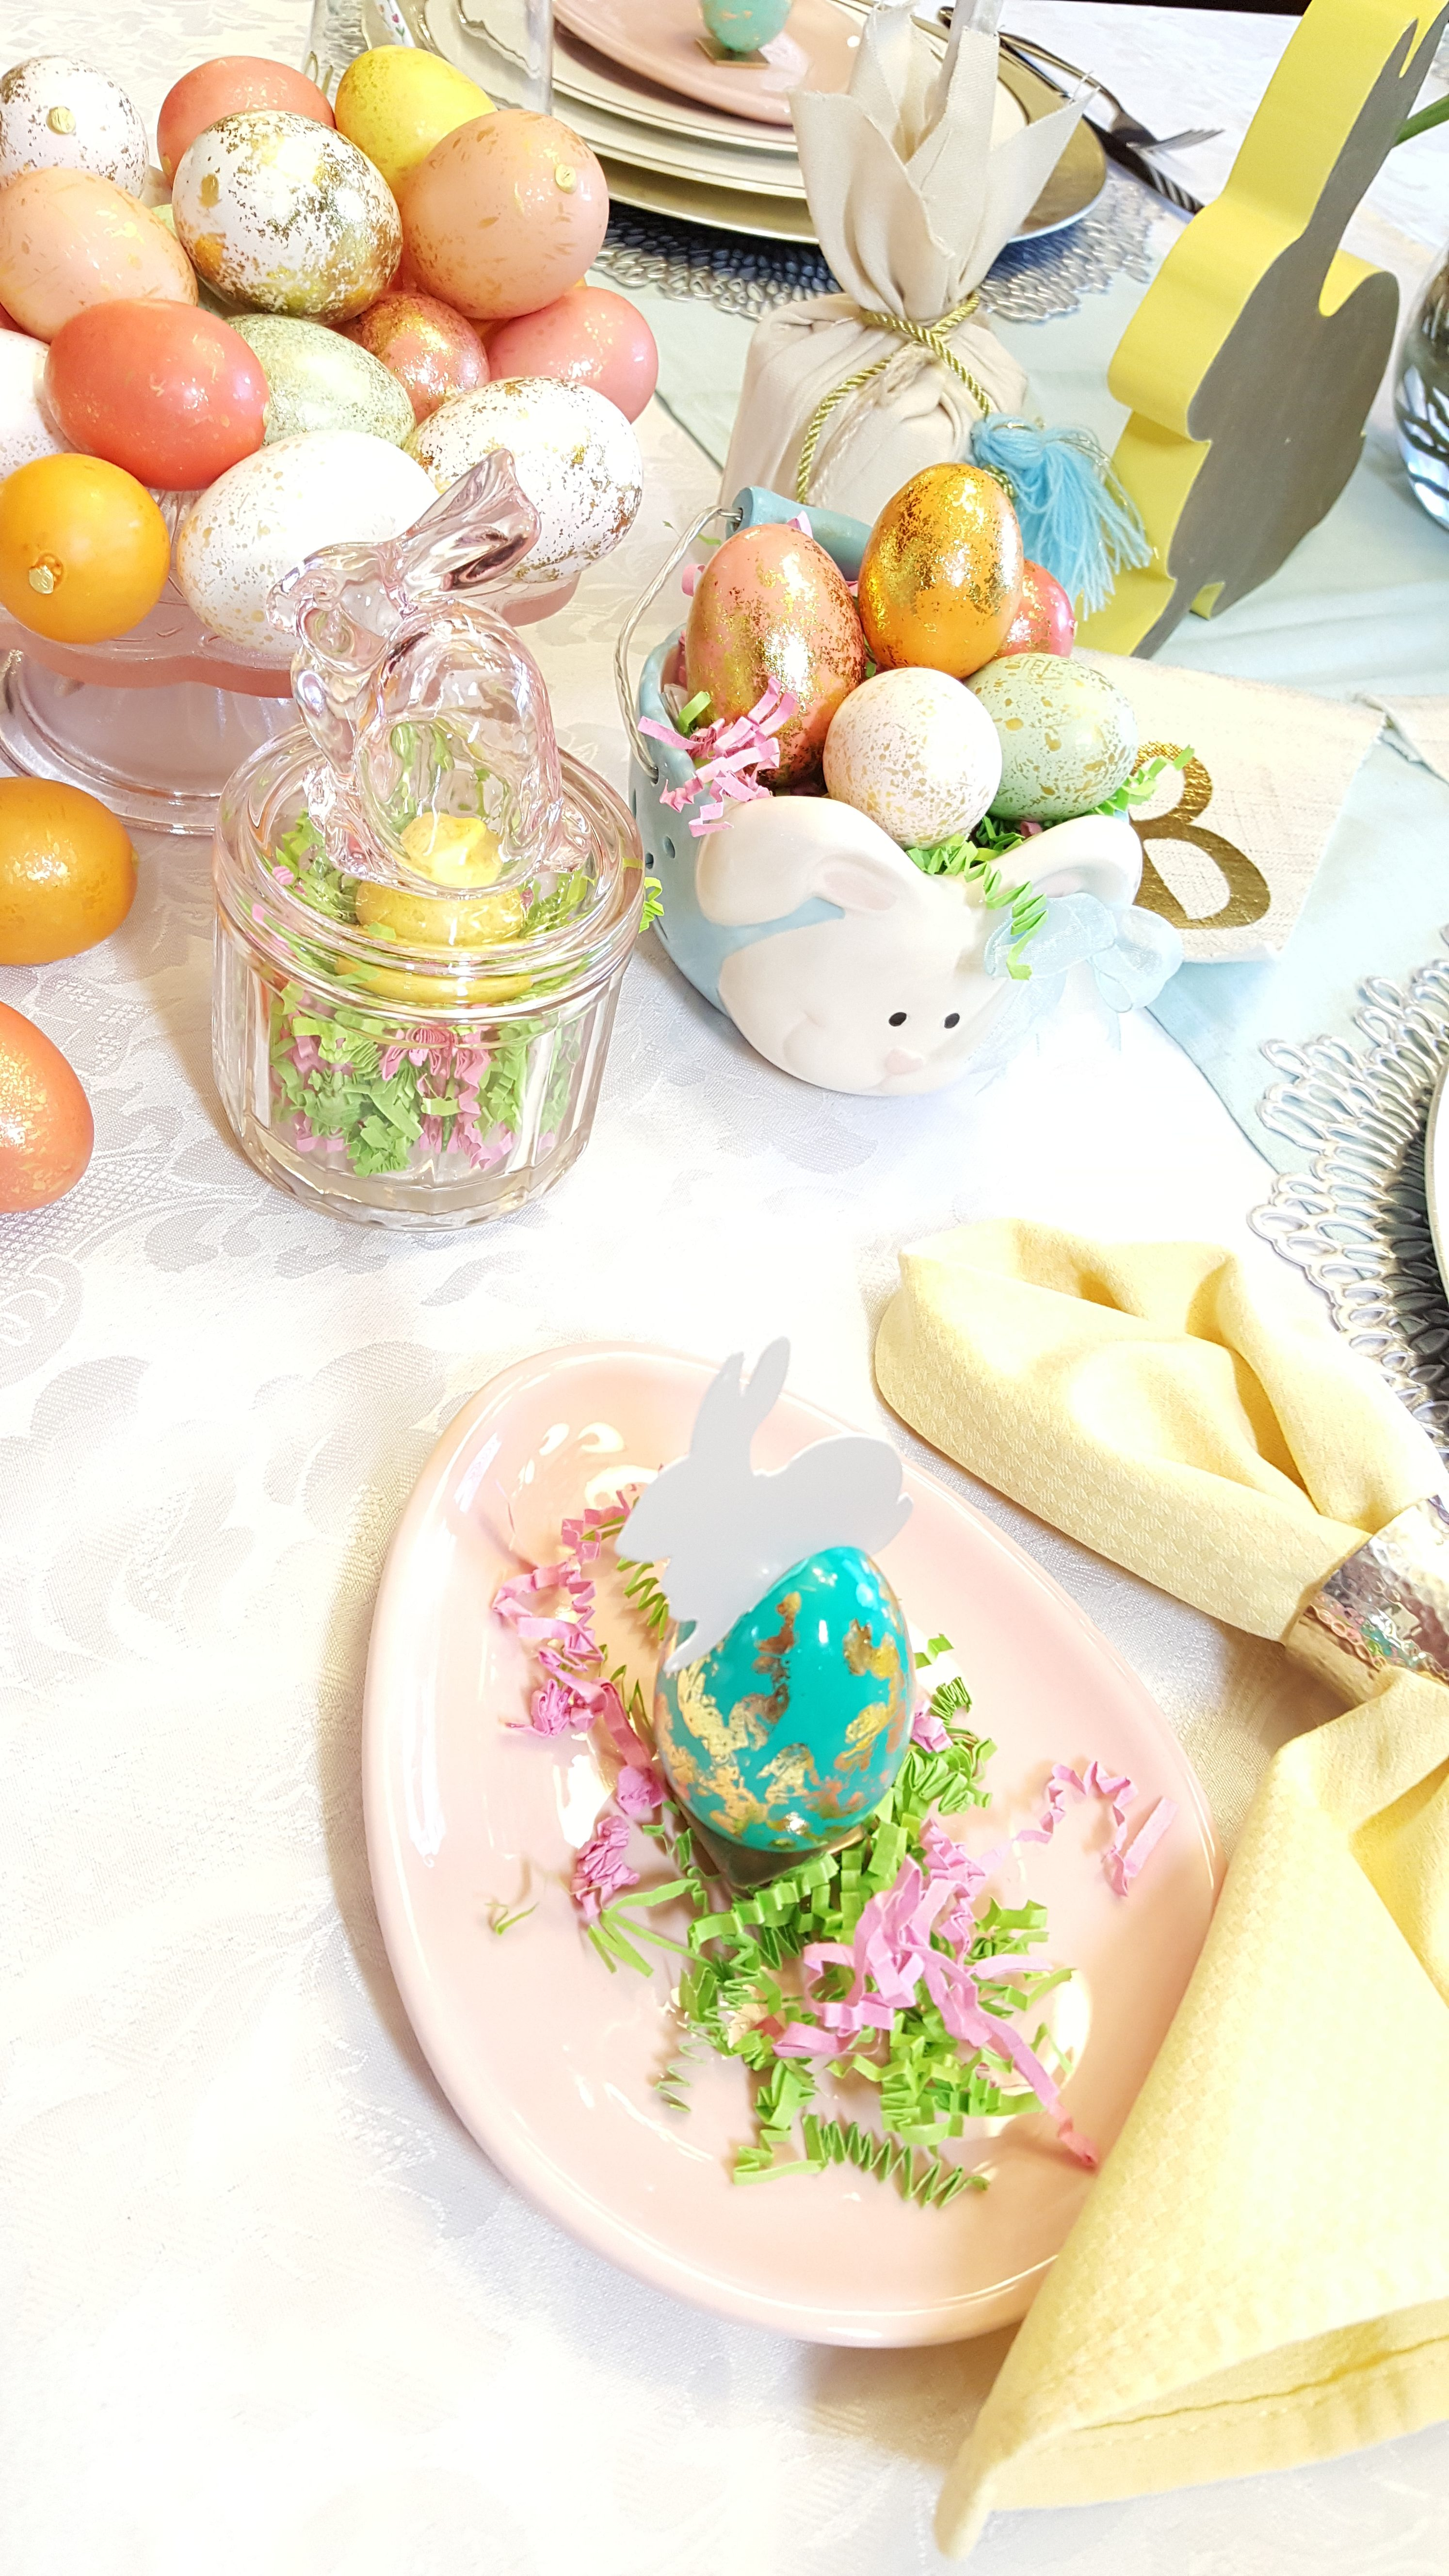 How to create a beautiful easter table plano profile connecting for dessert im serving sugar cookies and fluffy pastel colored marshmallows in the colorful easter egg plates in addition i also love using pastel cake negle Image collections